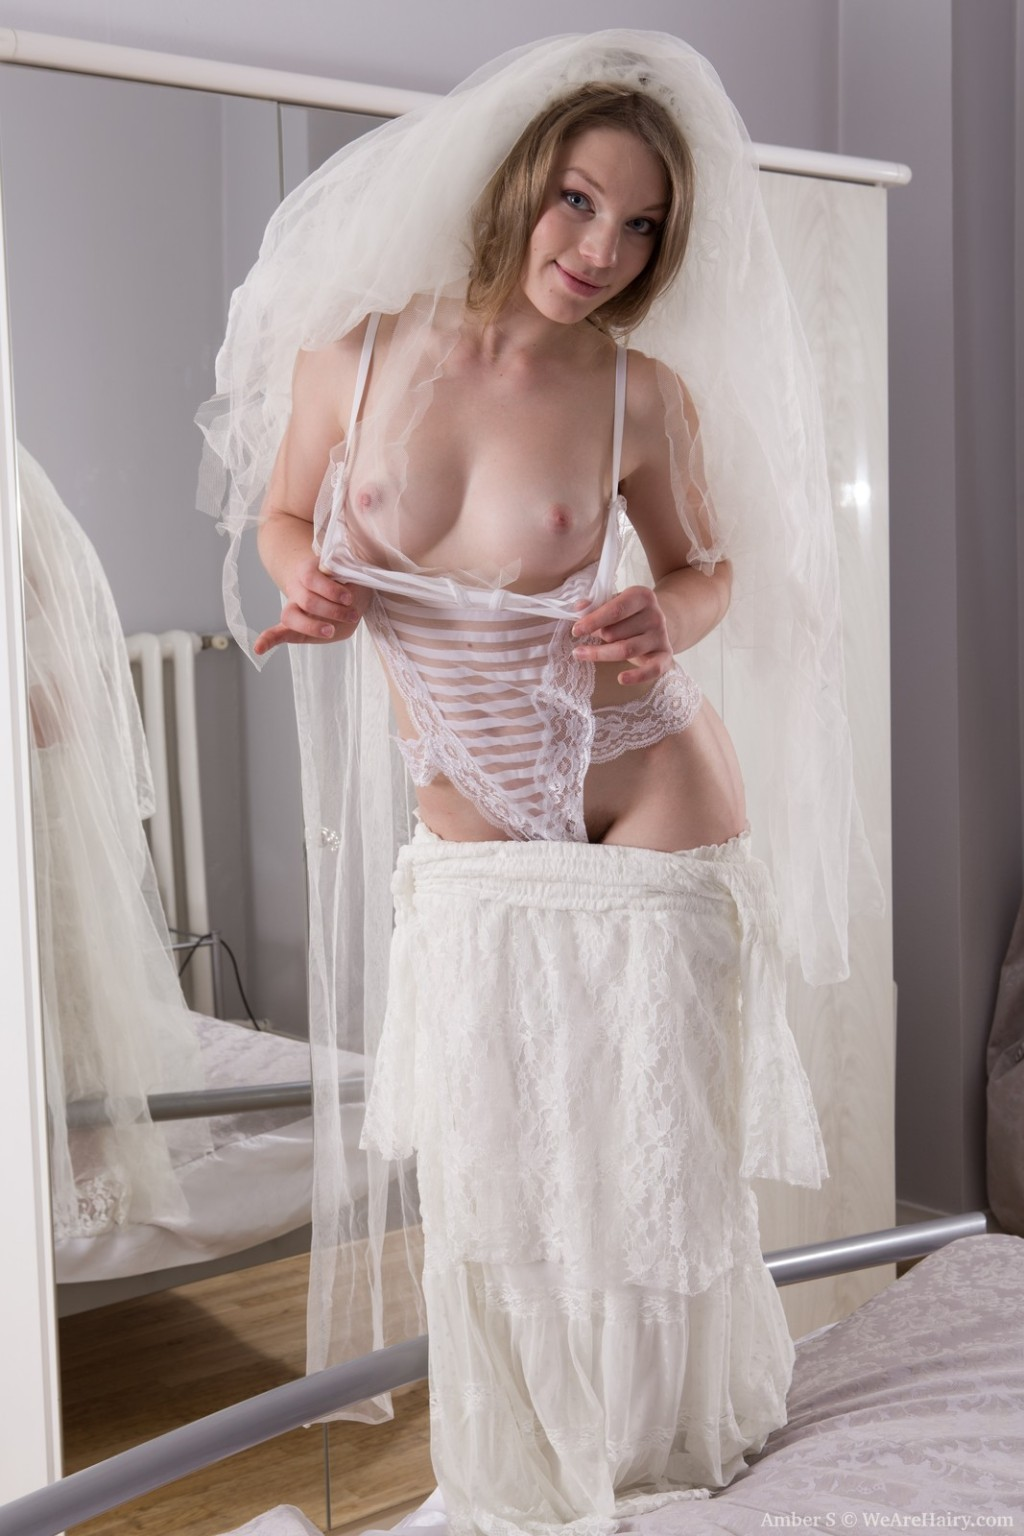 Amber s gets undressed exposed in her wedding clothing